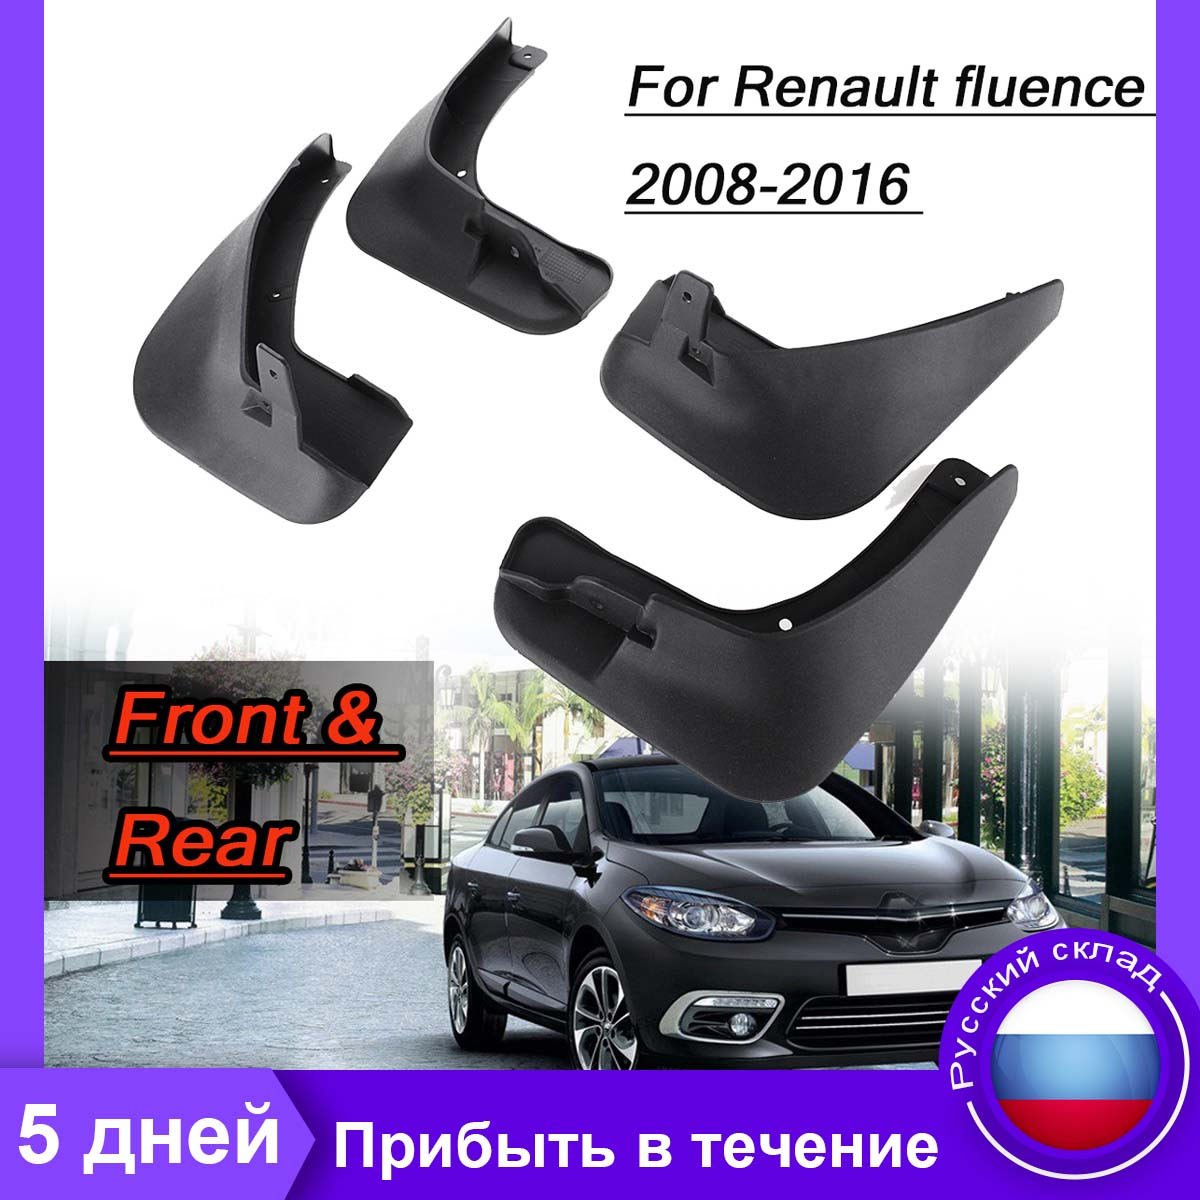 Front Rear Mud Flaps For Renault Fluence 2008 2016 for Fender Splash Guards Mudflaps Mudguards Car Accessories-in Mudguards from Automobiles & Motorcycles